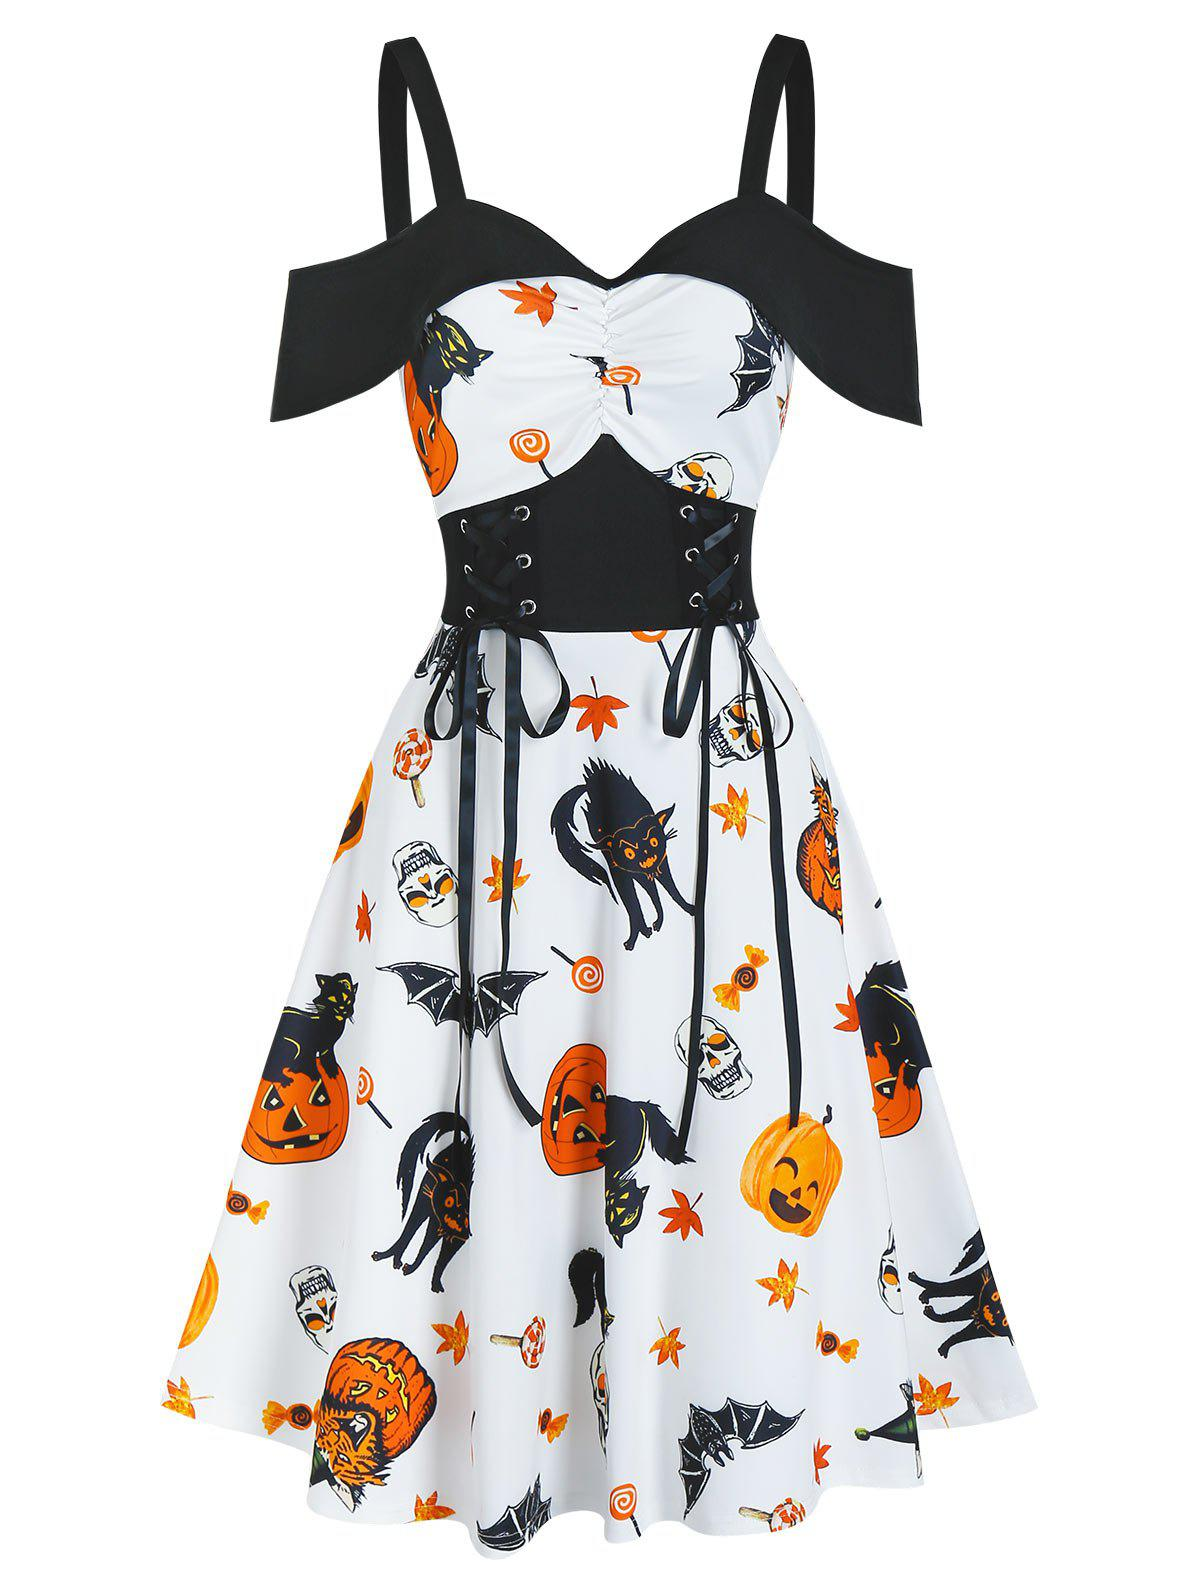 Robe d'Halloween Mi-Longue Linge A Citrouille Animal Imprimé à Lacets à Volants - Blanc S